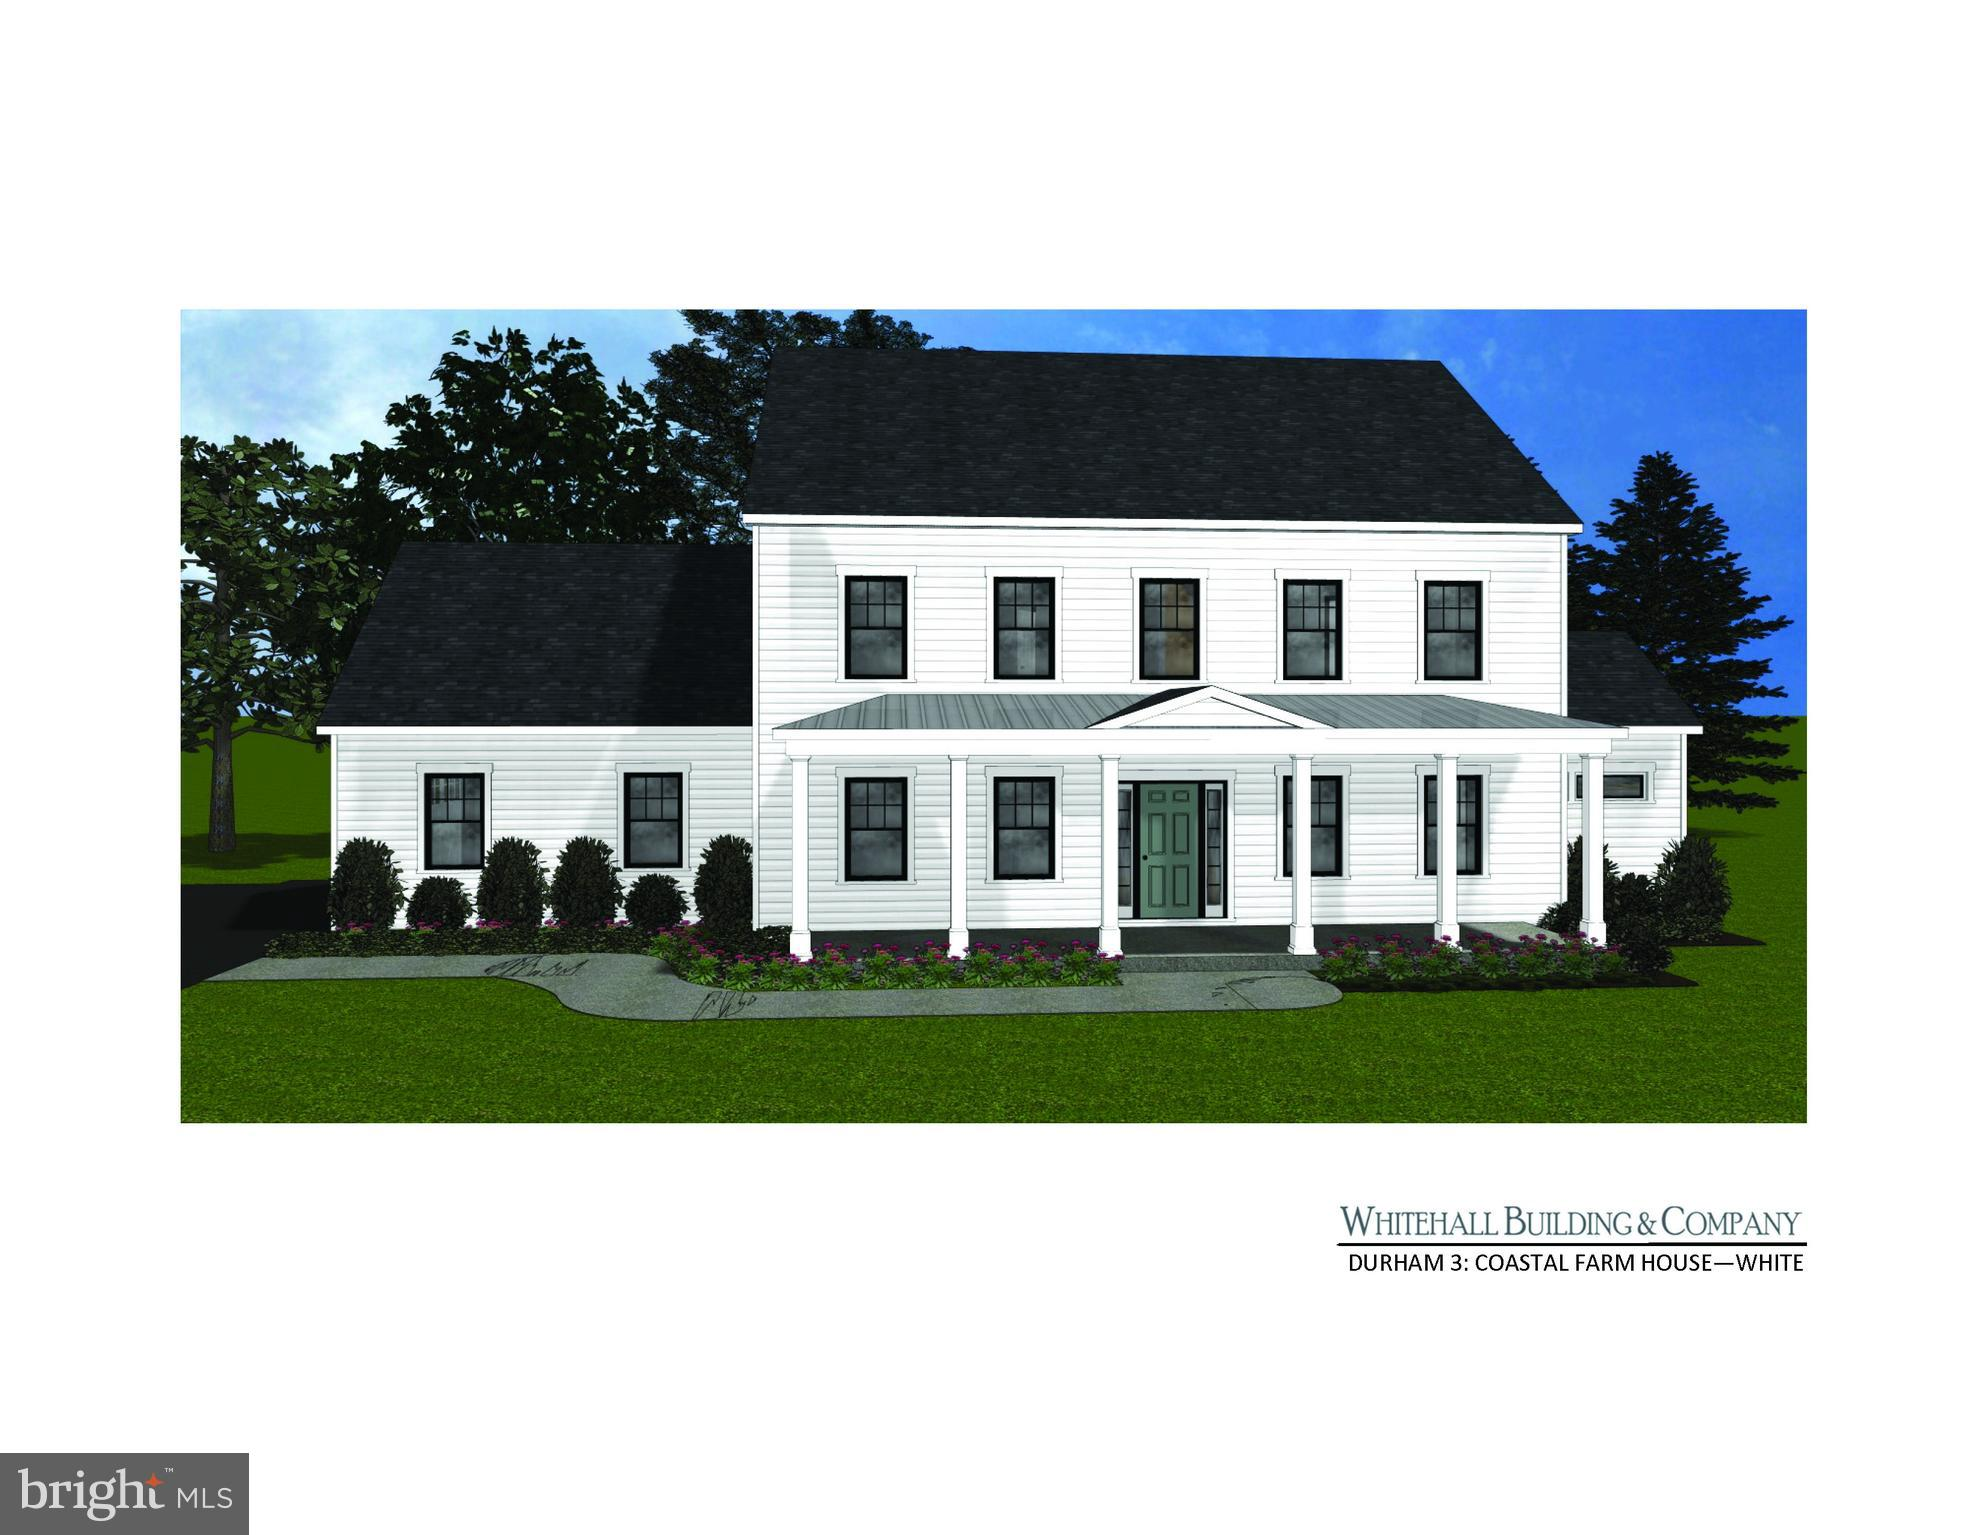 NEW CONSTRUCTION custom home to be built on 6 acres! Great location to enjoy the peaceful country-li